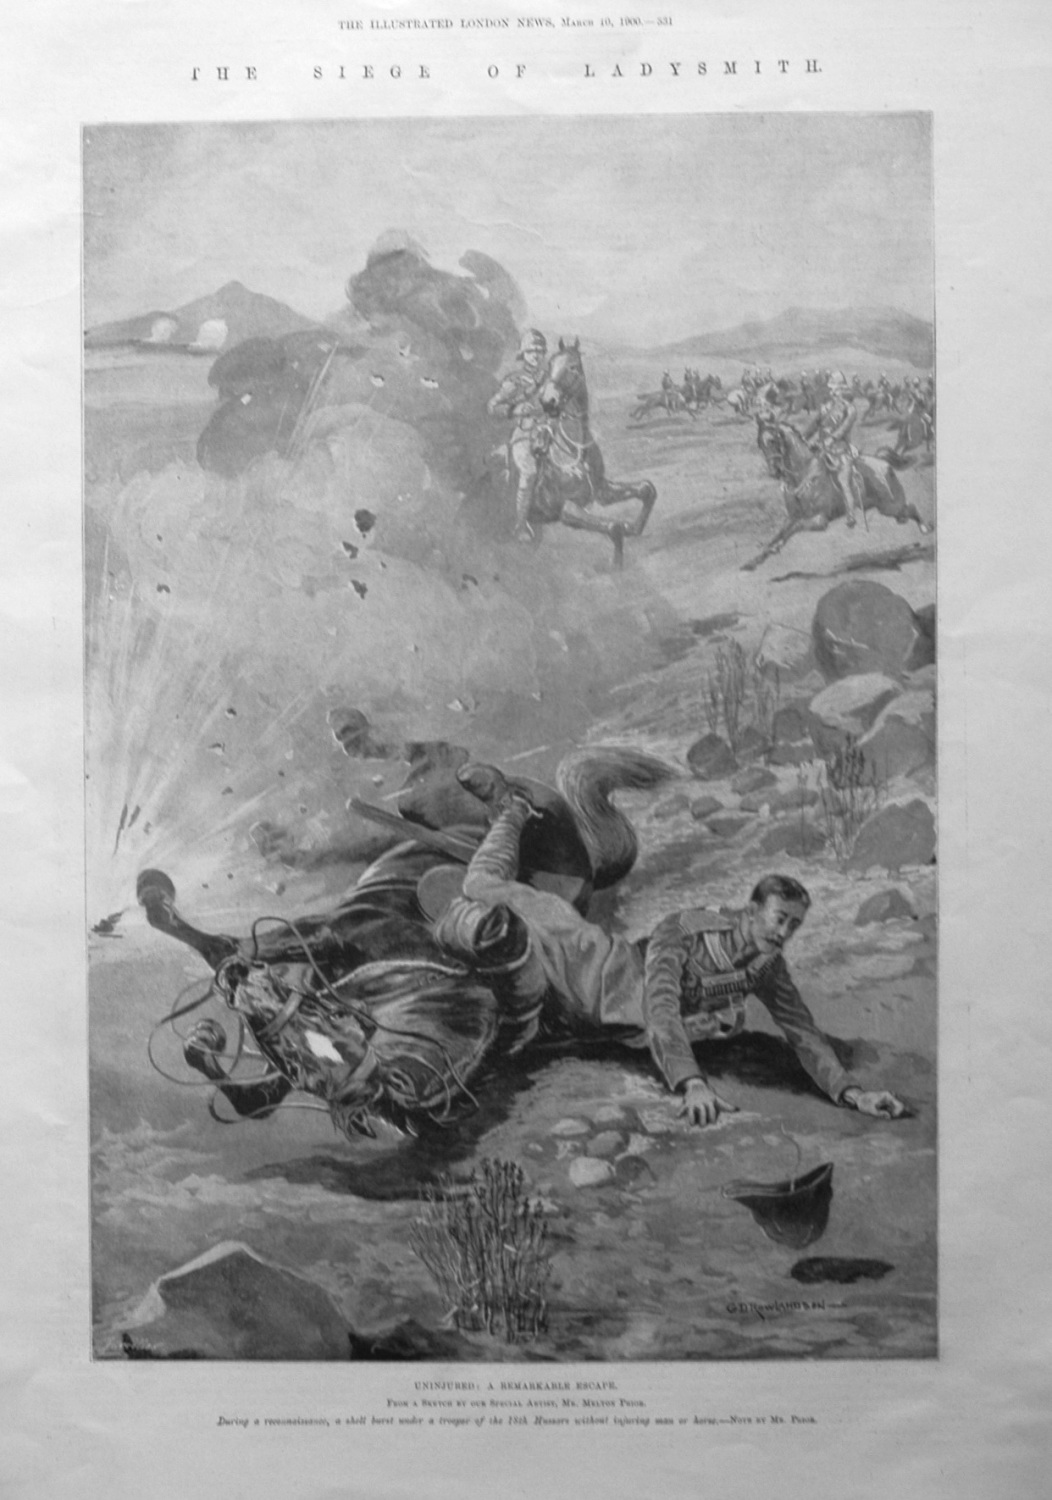 The Siege of Ladysmith. Uninjured : A Remarkable Escape. 1900.